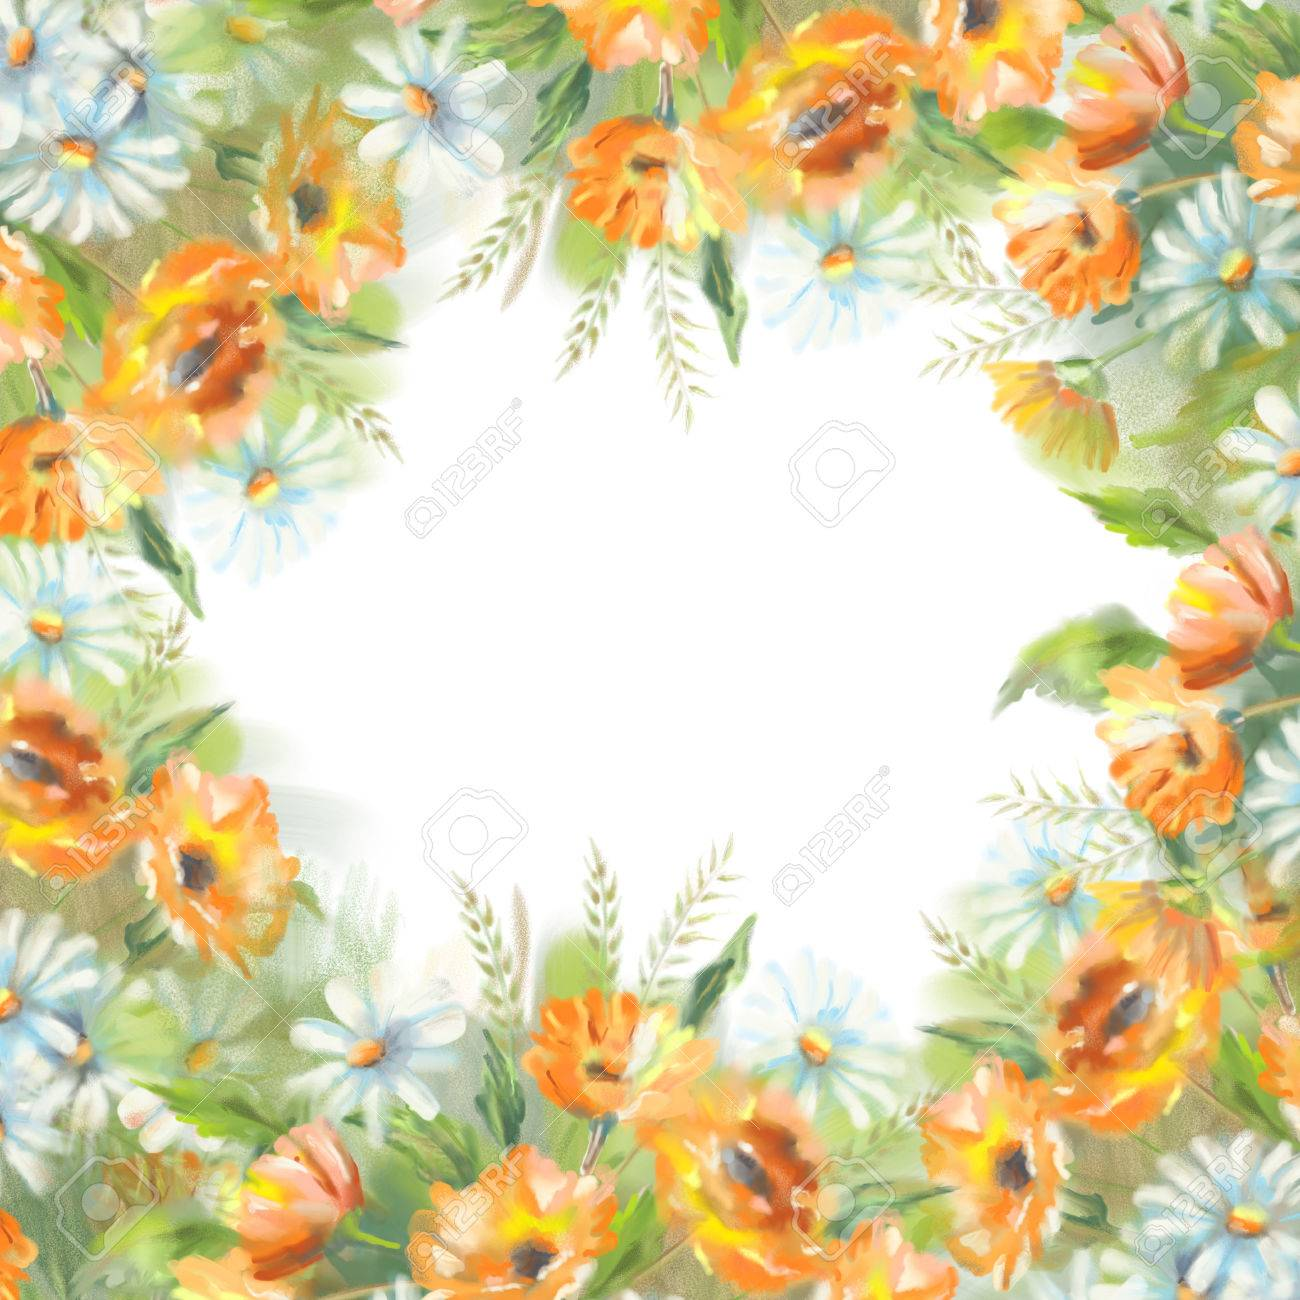 Watercolor Illustration Of Painted Flowers Border Over A White